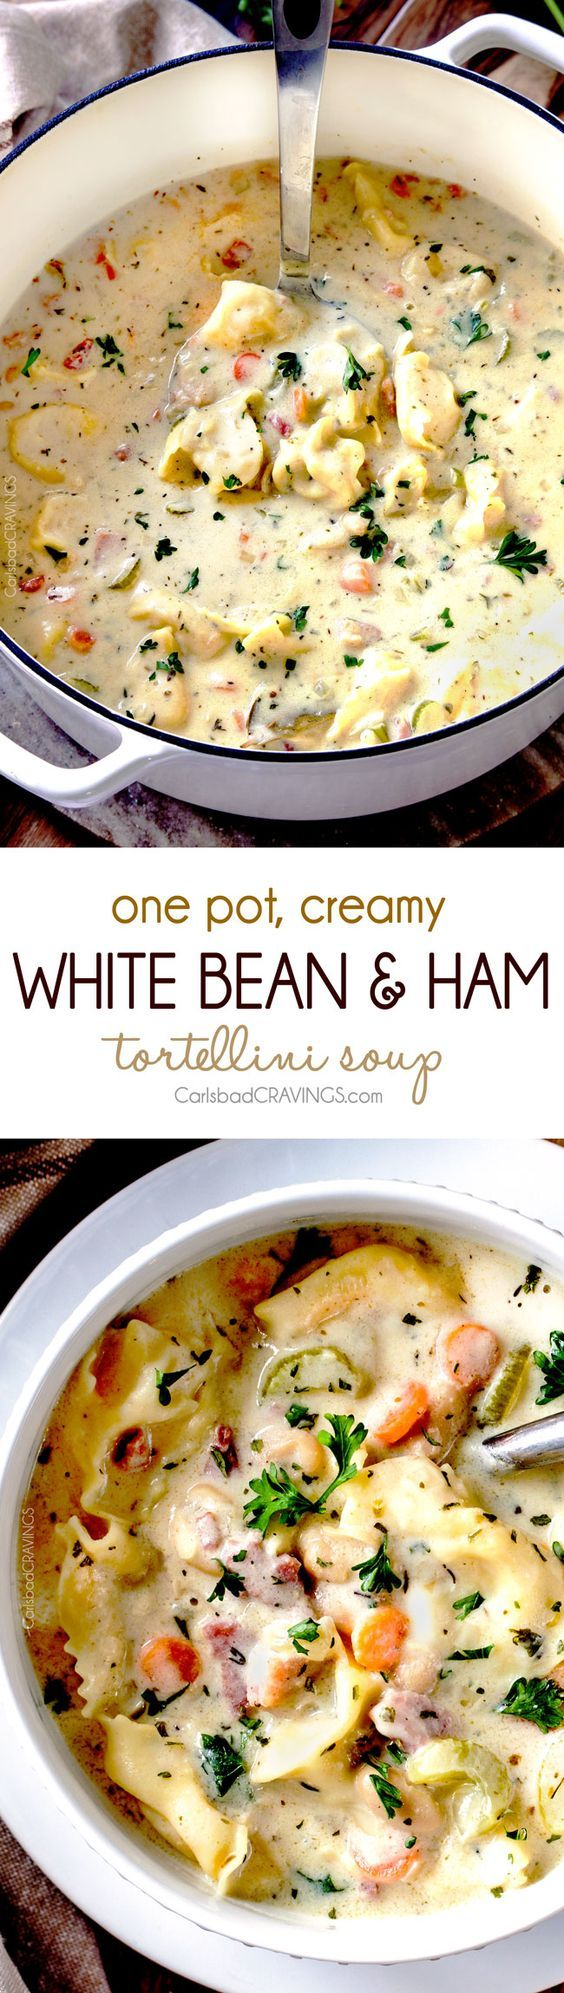 One Pot Creamy White Bean and Ham, Tortellini Soup ...